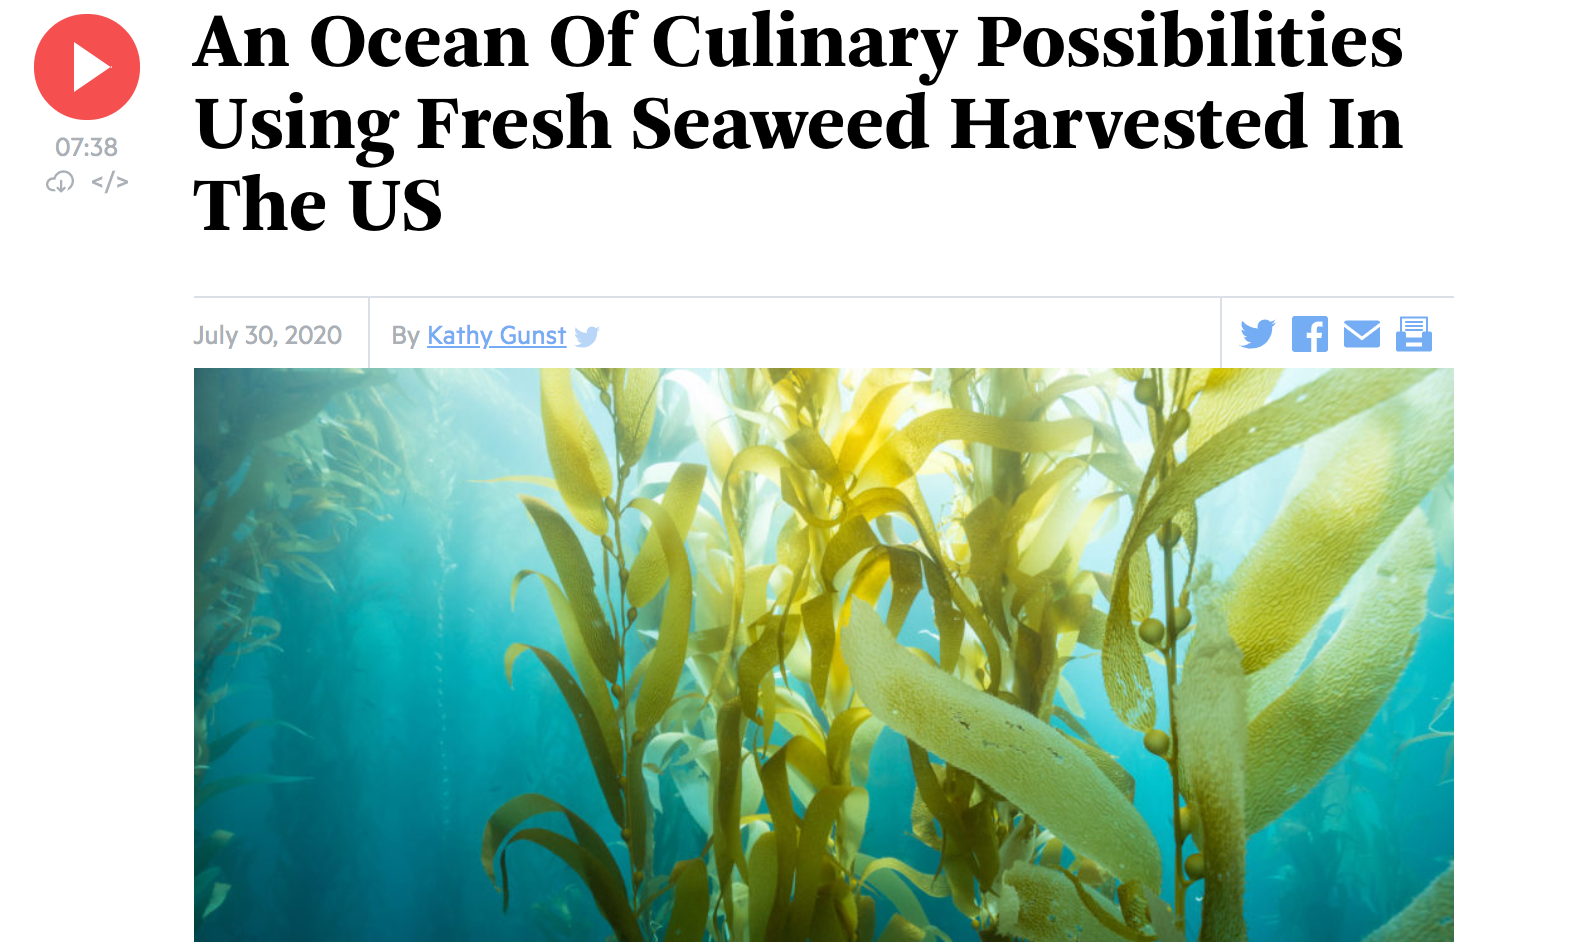 Here & Now: An Ocean Of Culinary Possibilities Using Fresh Seaweed Harvested In The US